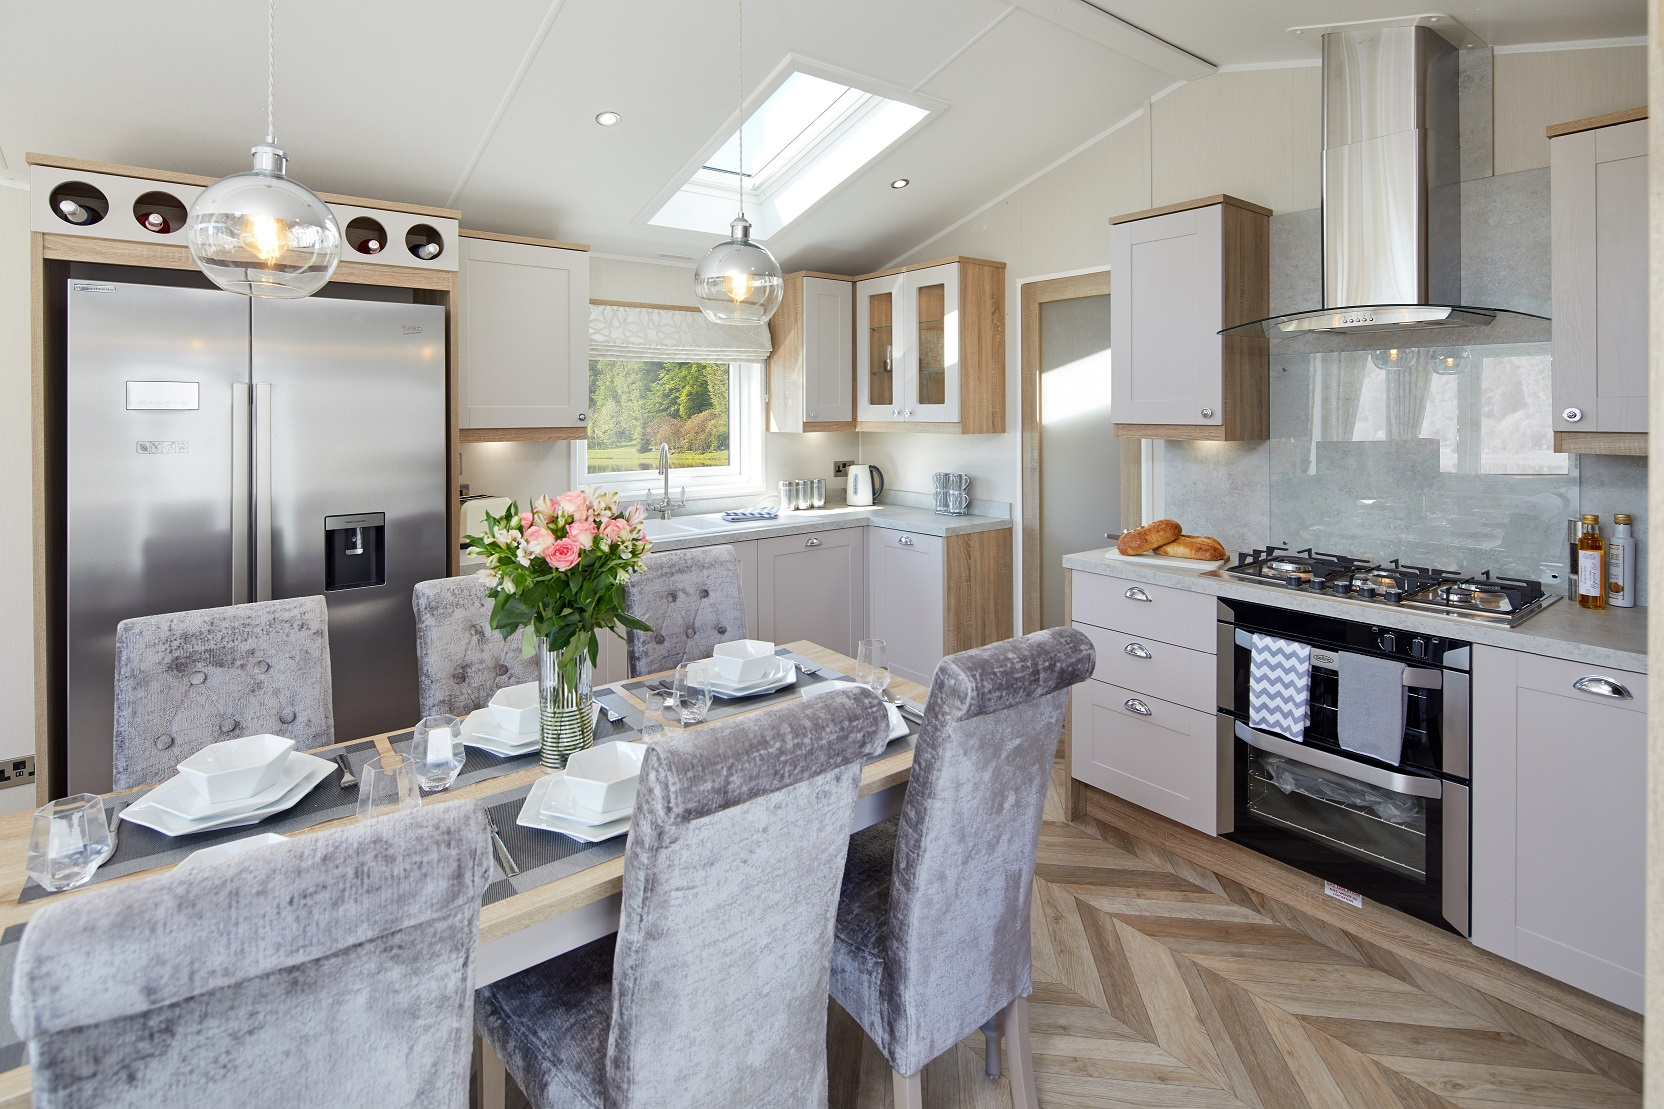 Willerby Vogue Classique - 13 foot - 2 Bedrooms: New Static Caravans and Holiday Homes for Sale, Available to Order Large Image 2